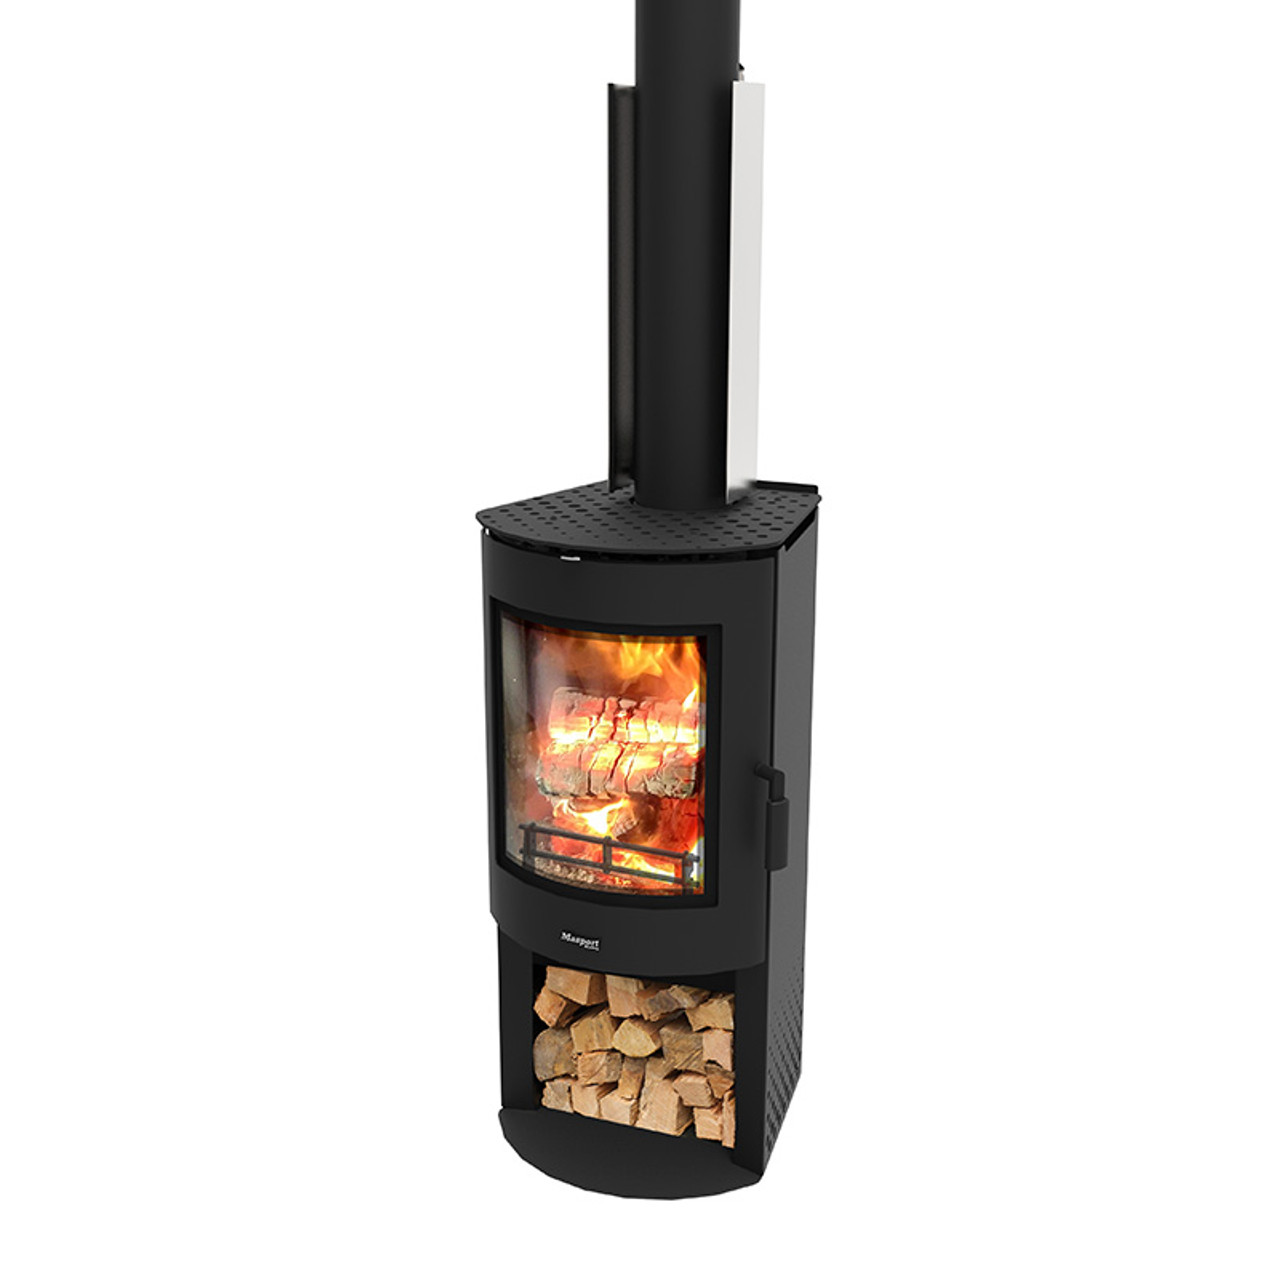 AkaroaWS - Freestanding Radian Wood Burner With Wood Stacker